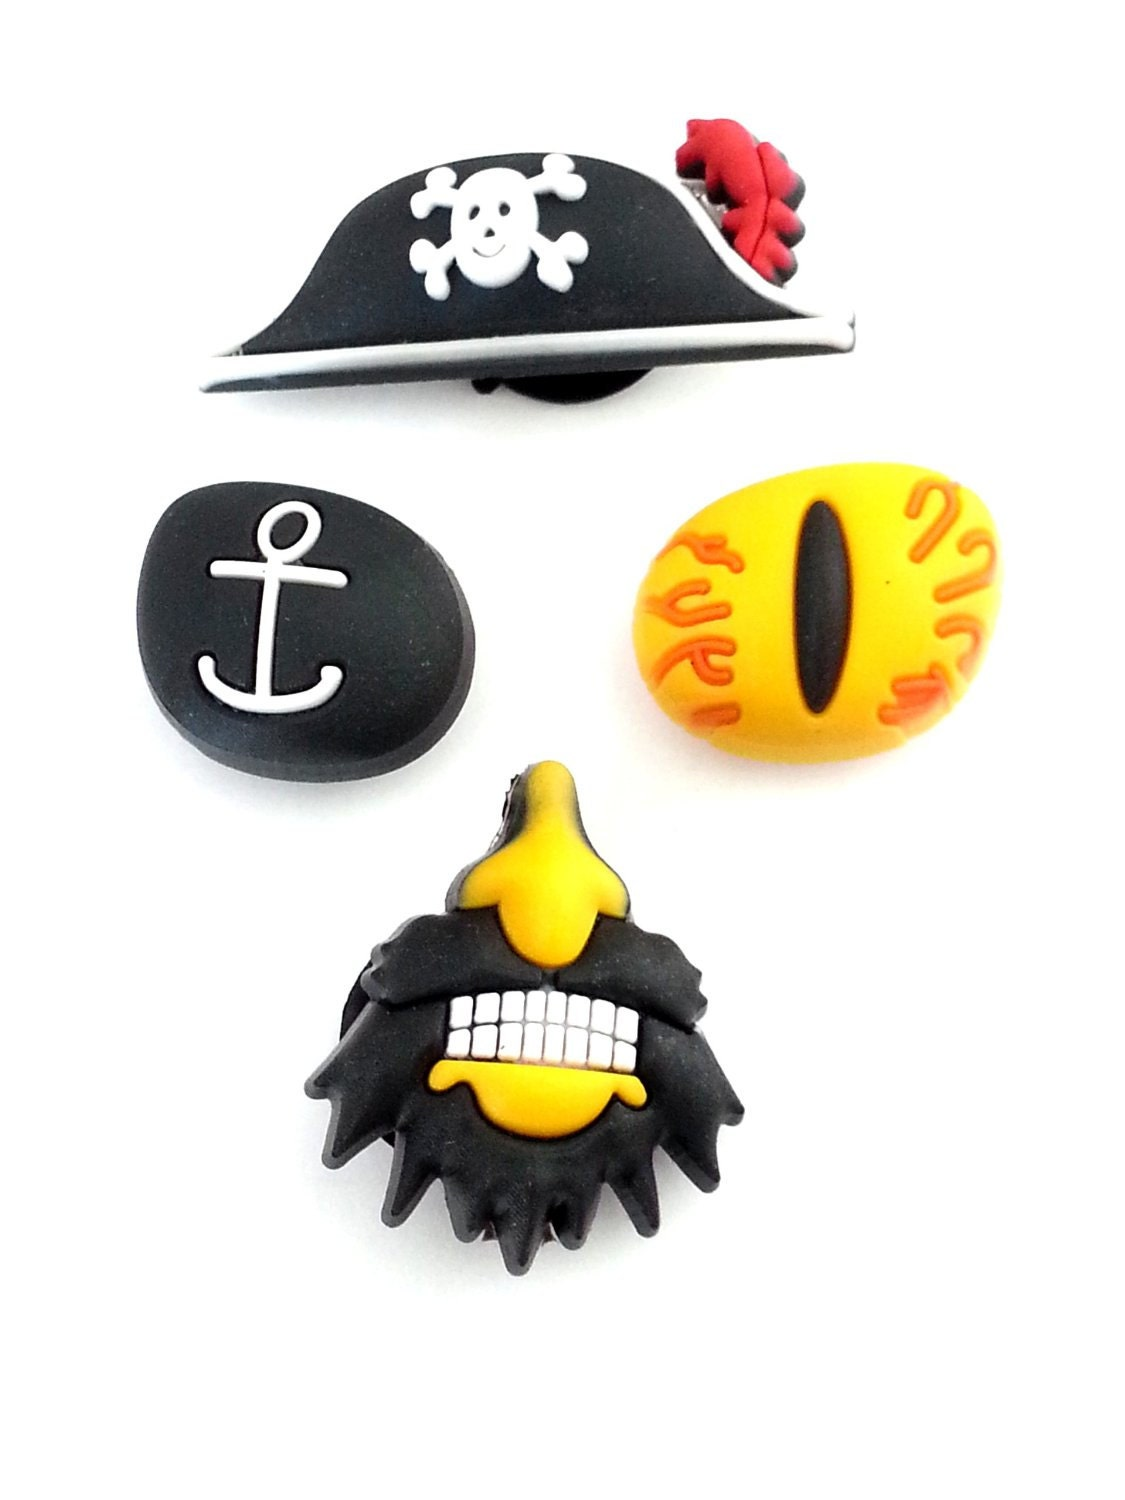 CROCS Jibbitz 3D Pirate 4 pcs Set of Shoe by VenusStationary